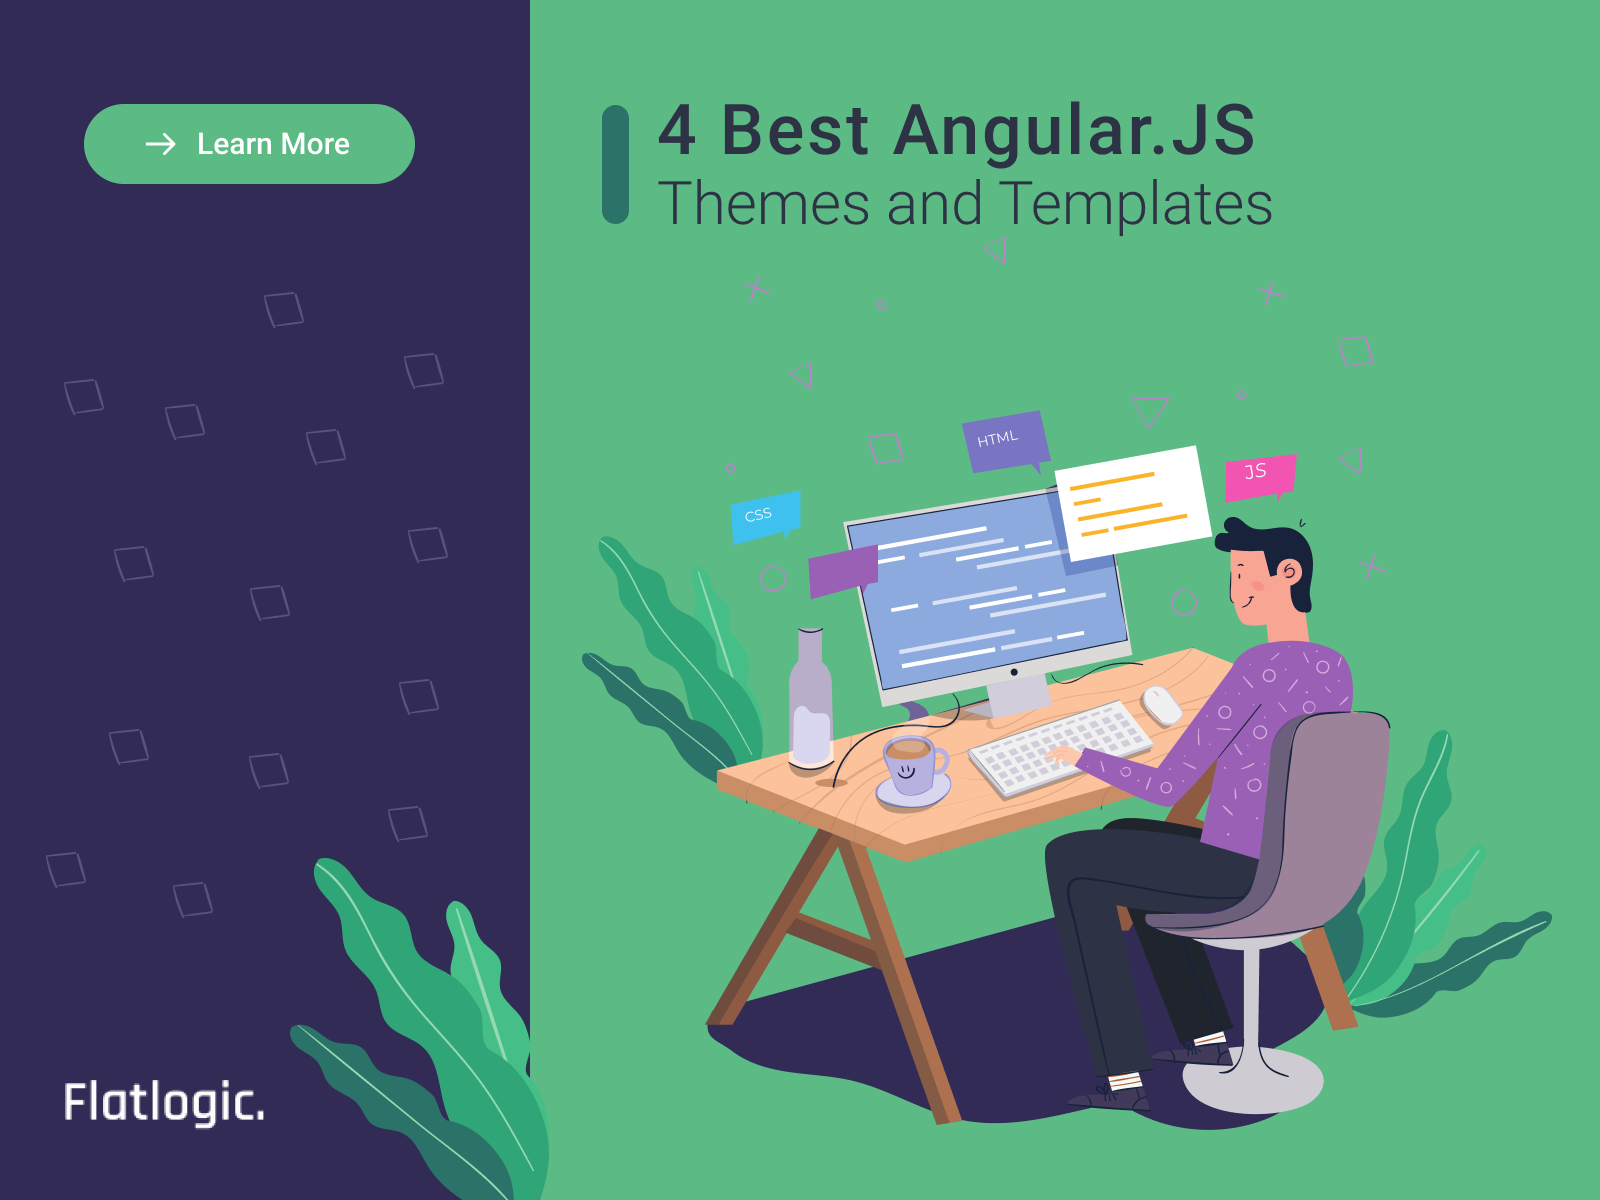 4 Best Angular.JS Themes and Templates for 2021